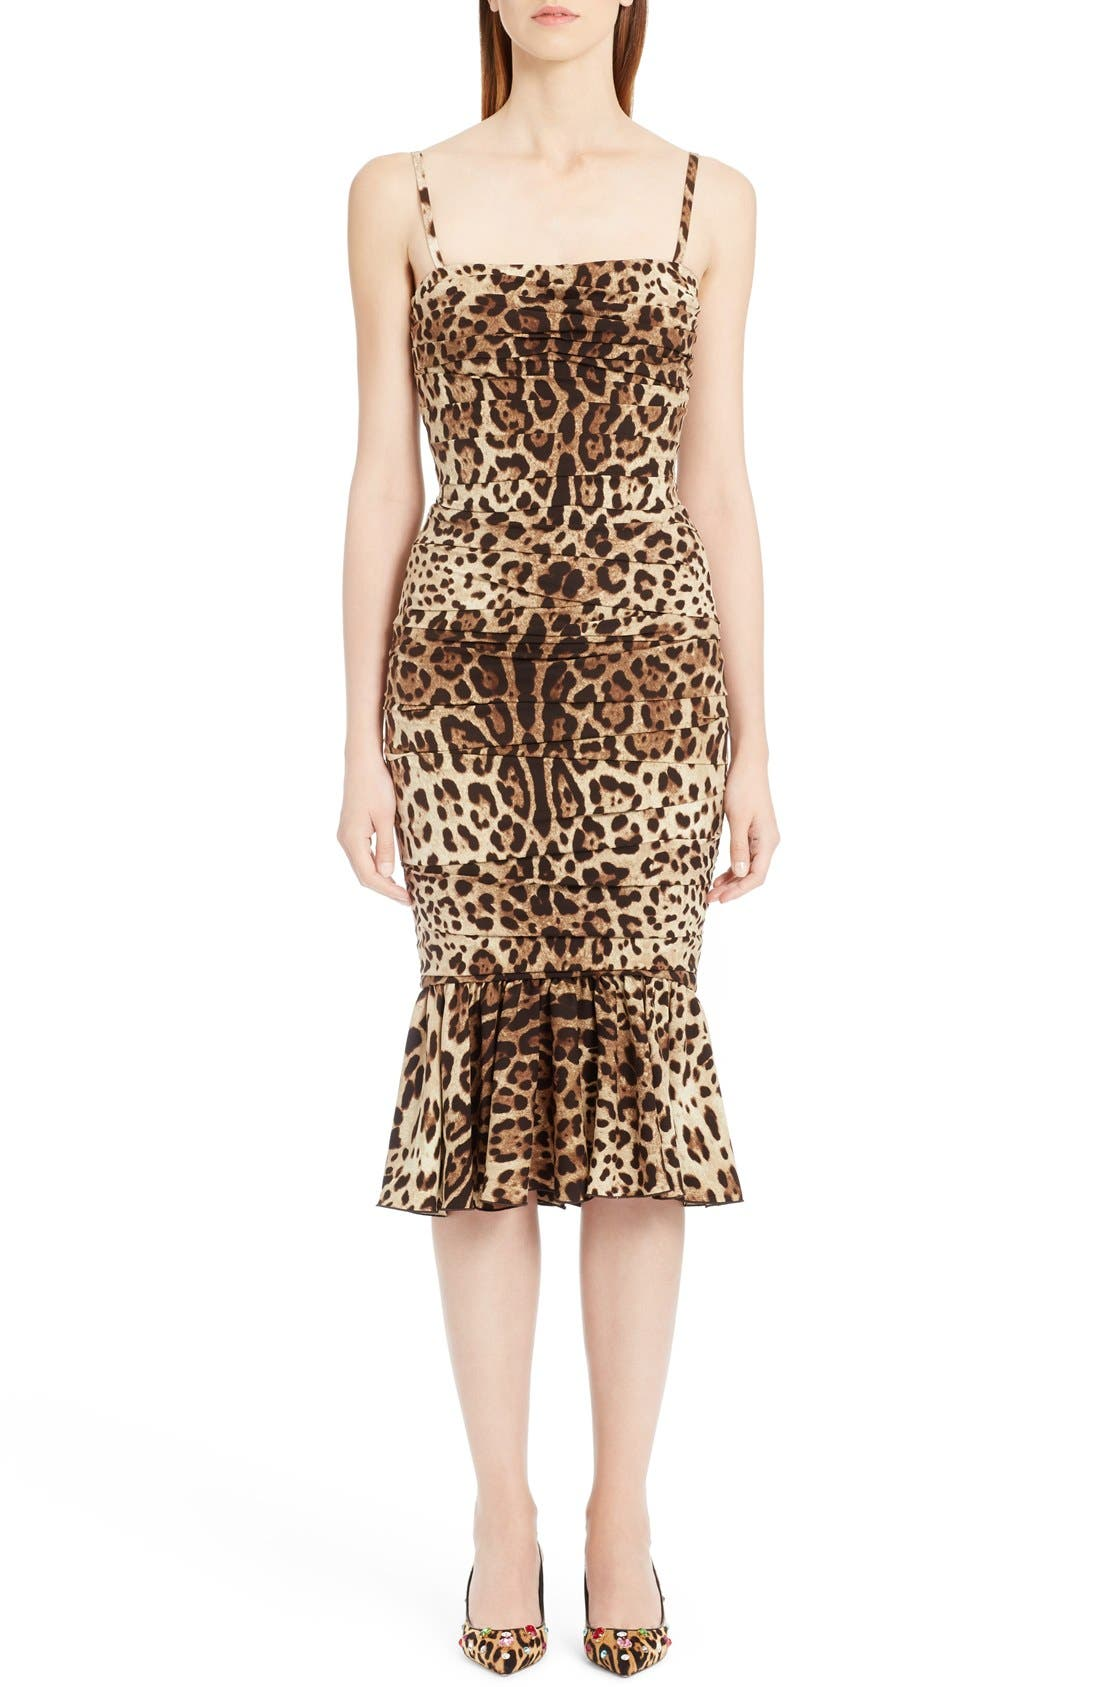 Main Image - Dolce&Gabbana Stretch Cady Leopard Print Ruched Dress